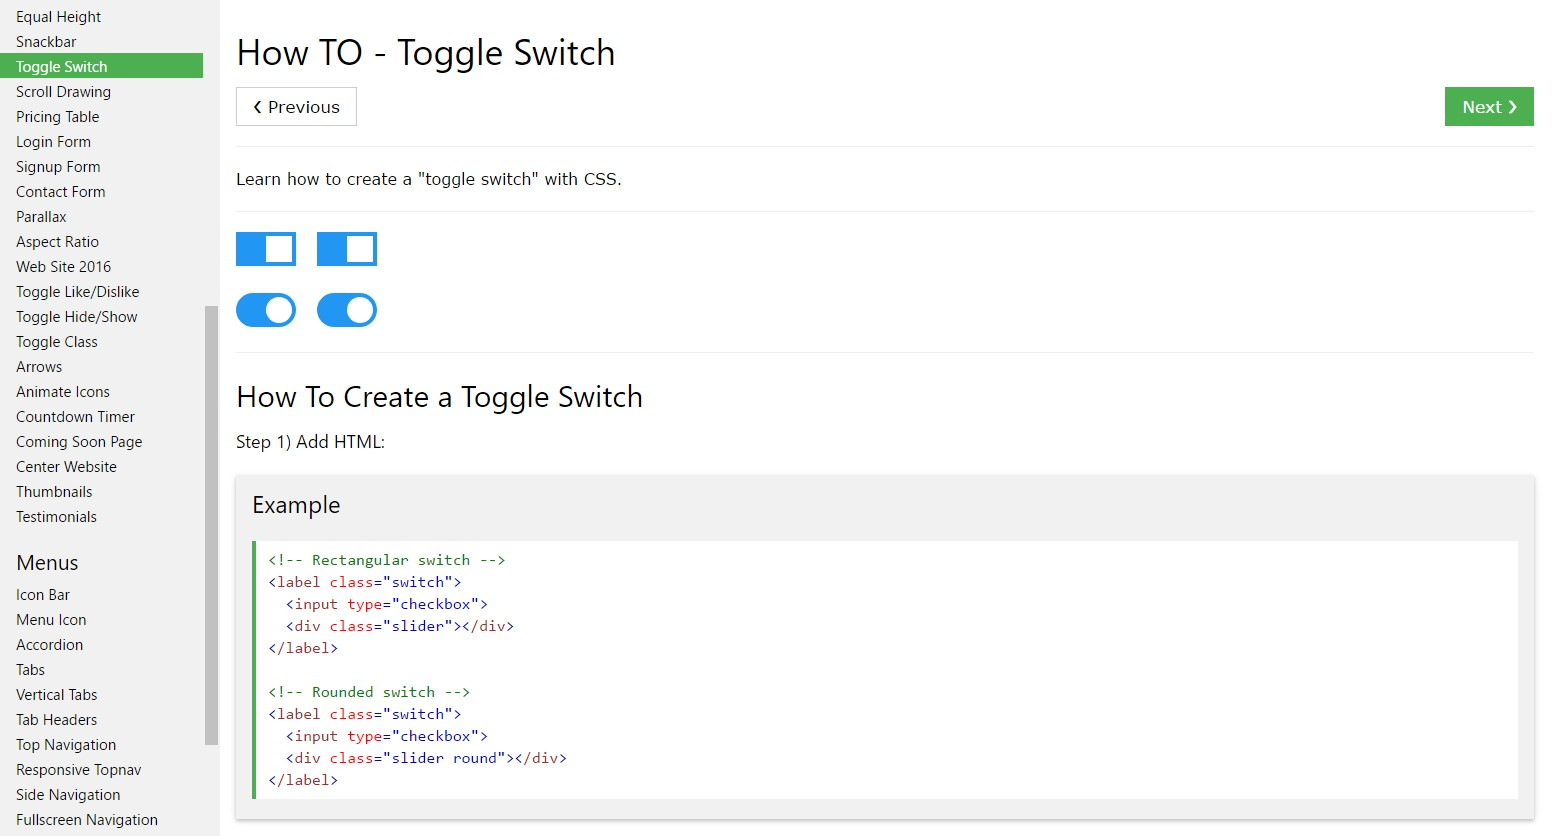 Ways to  develop Toggle Switch